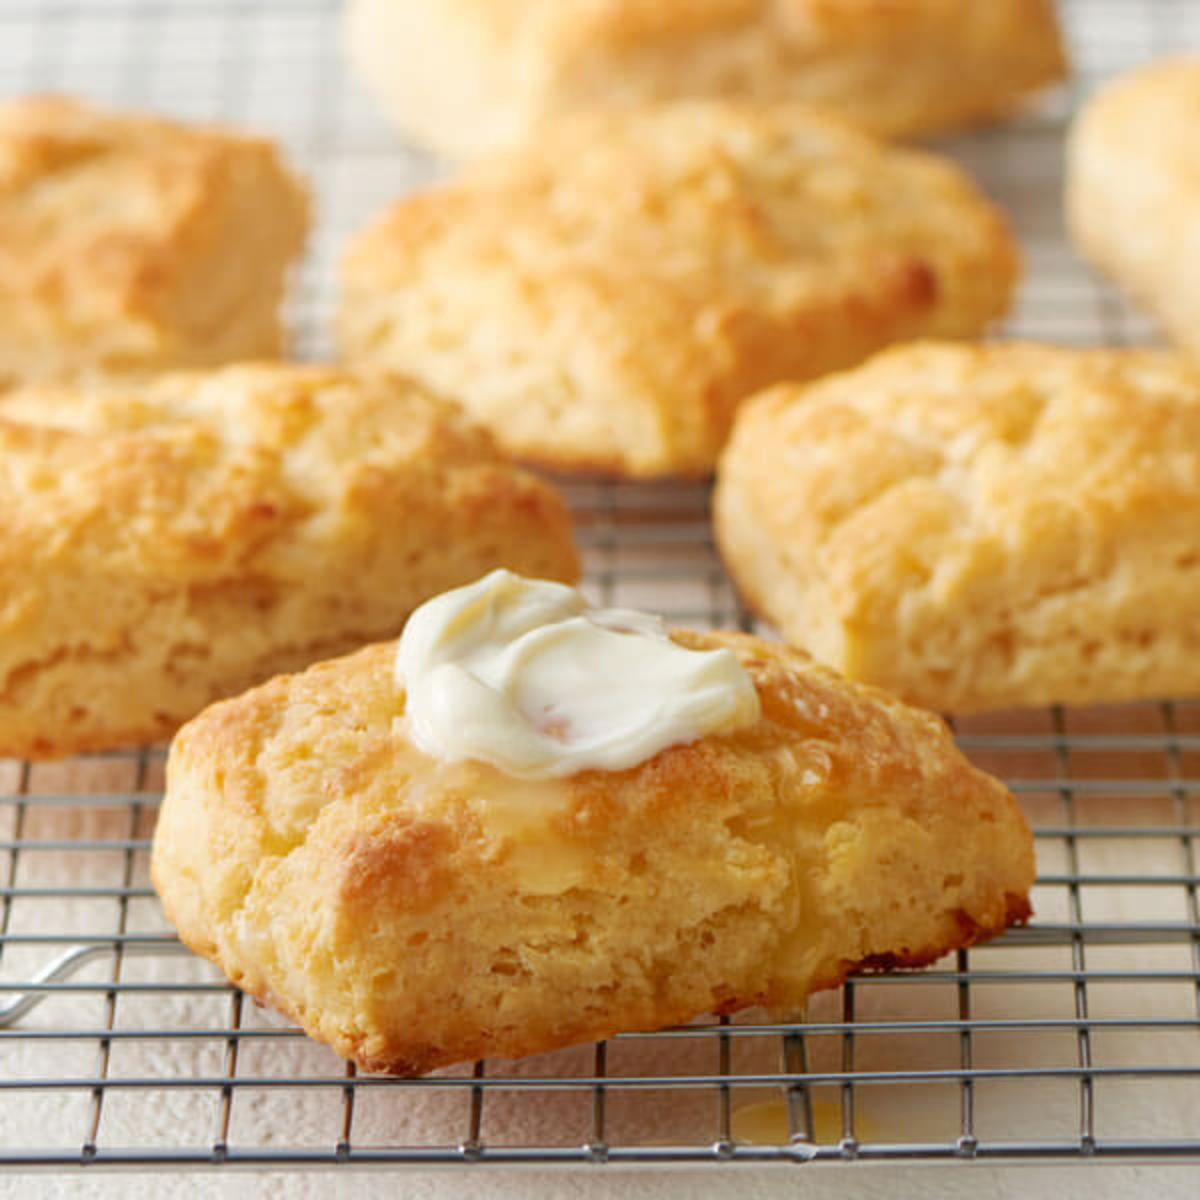 Put any of the foods seen on this hub into one of these cathead biscuits and man, what great eating.